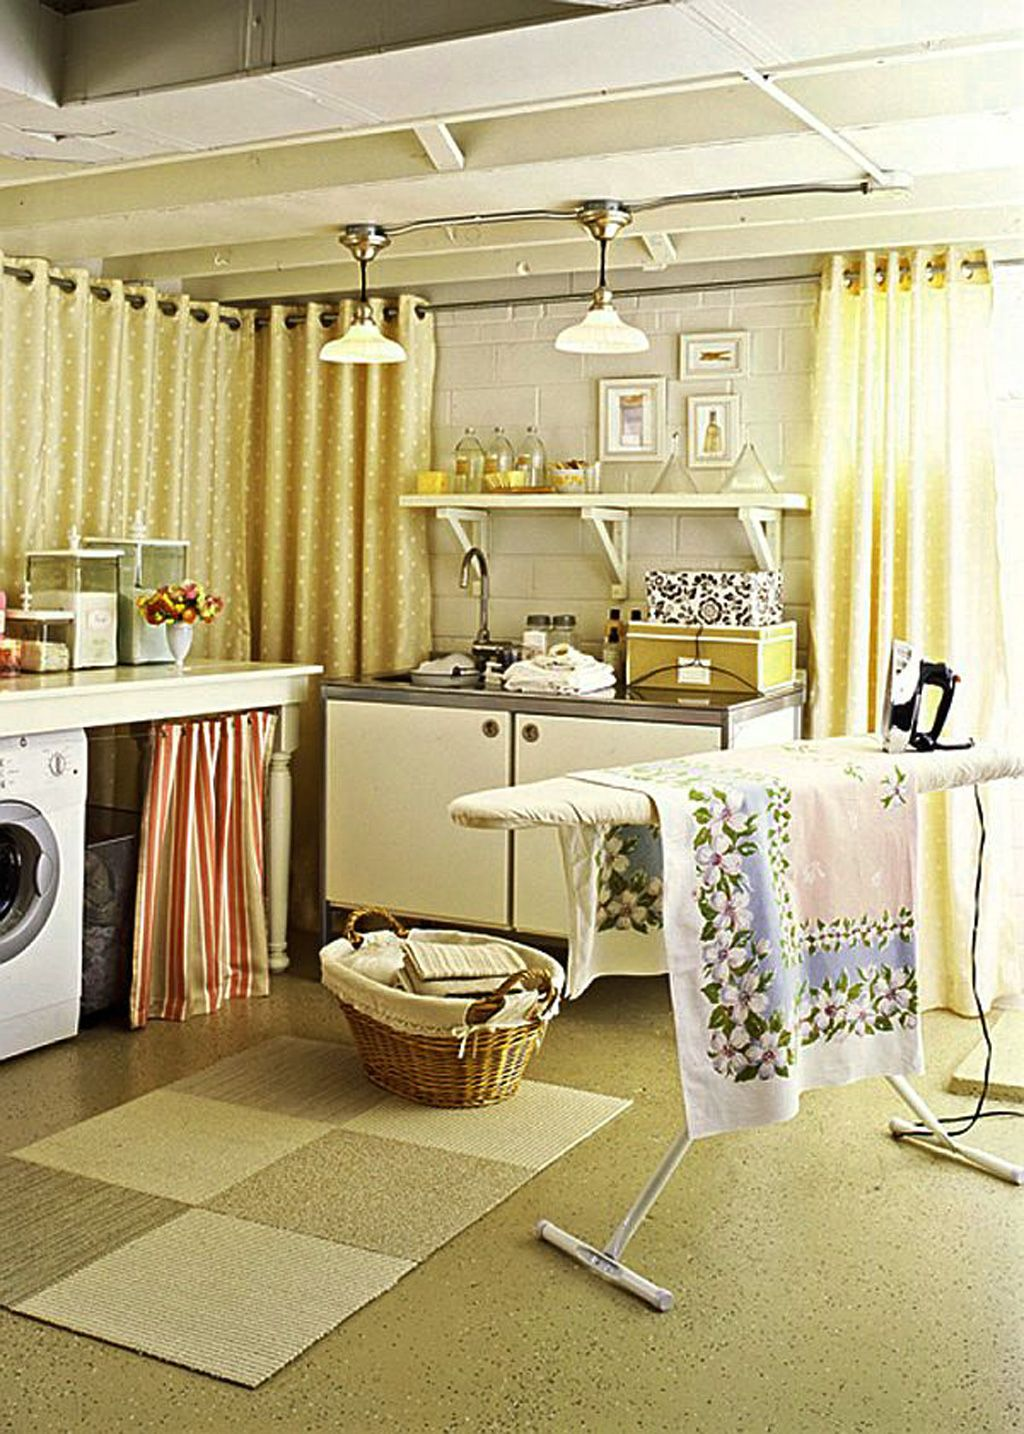 14 Basement Laundry Room ideas for Small Space (Makeovers ...